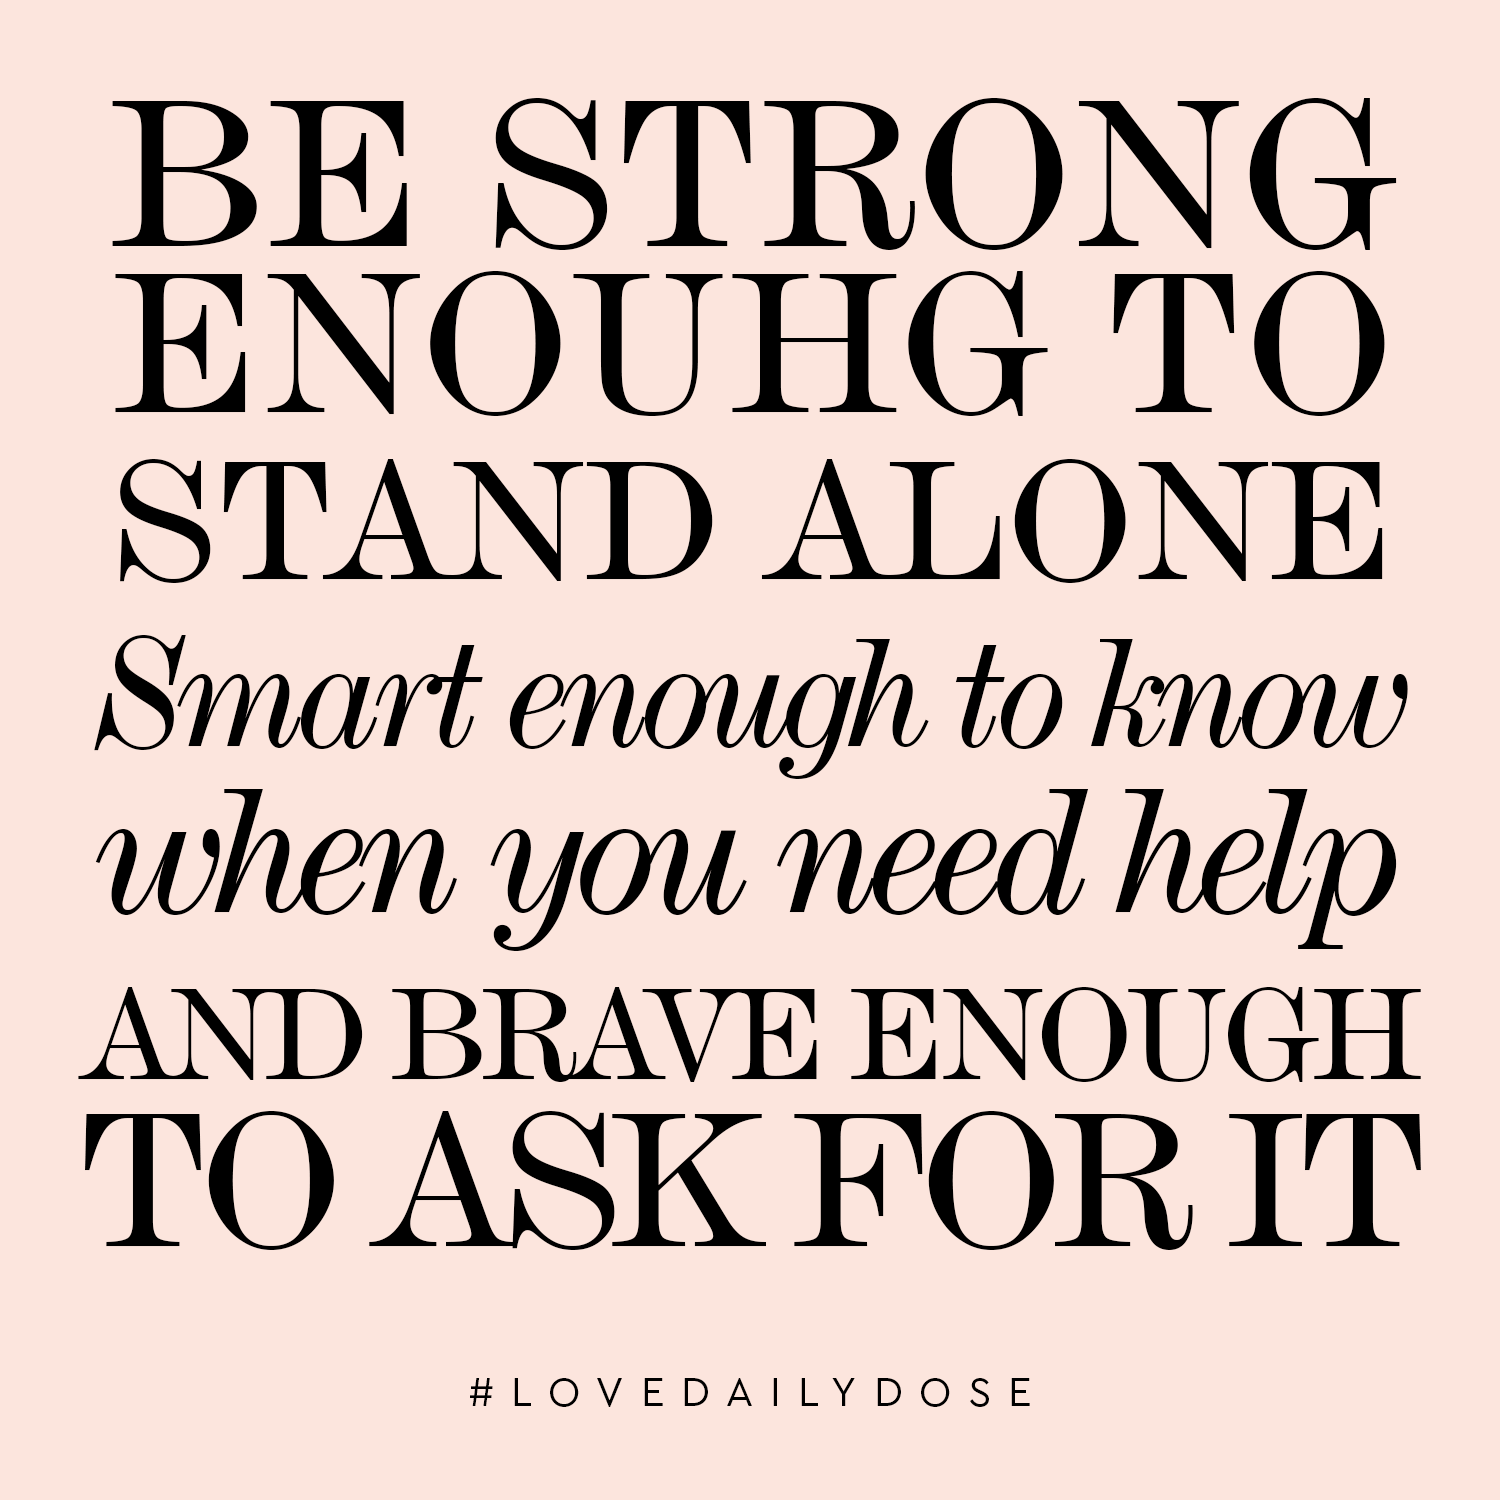 ask for help quote | Love Daily Dose